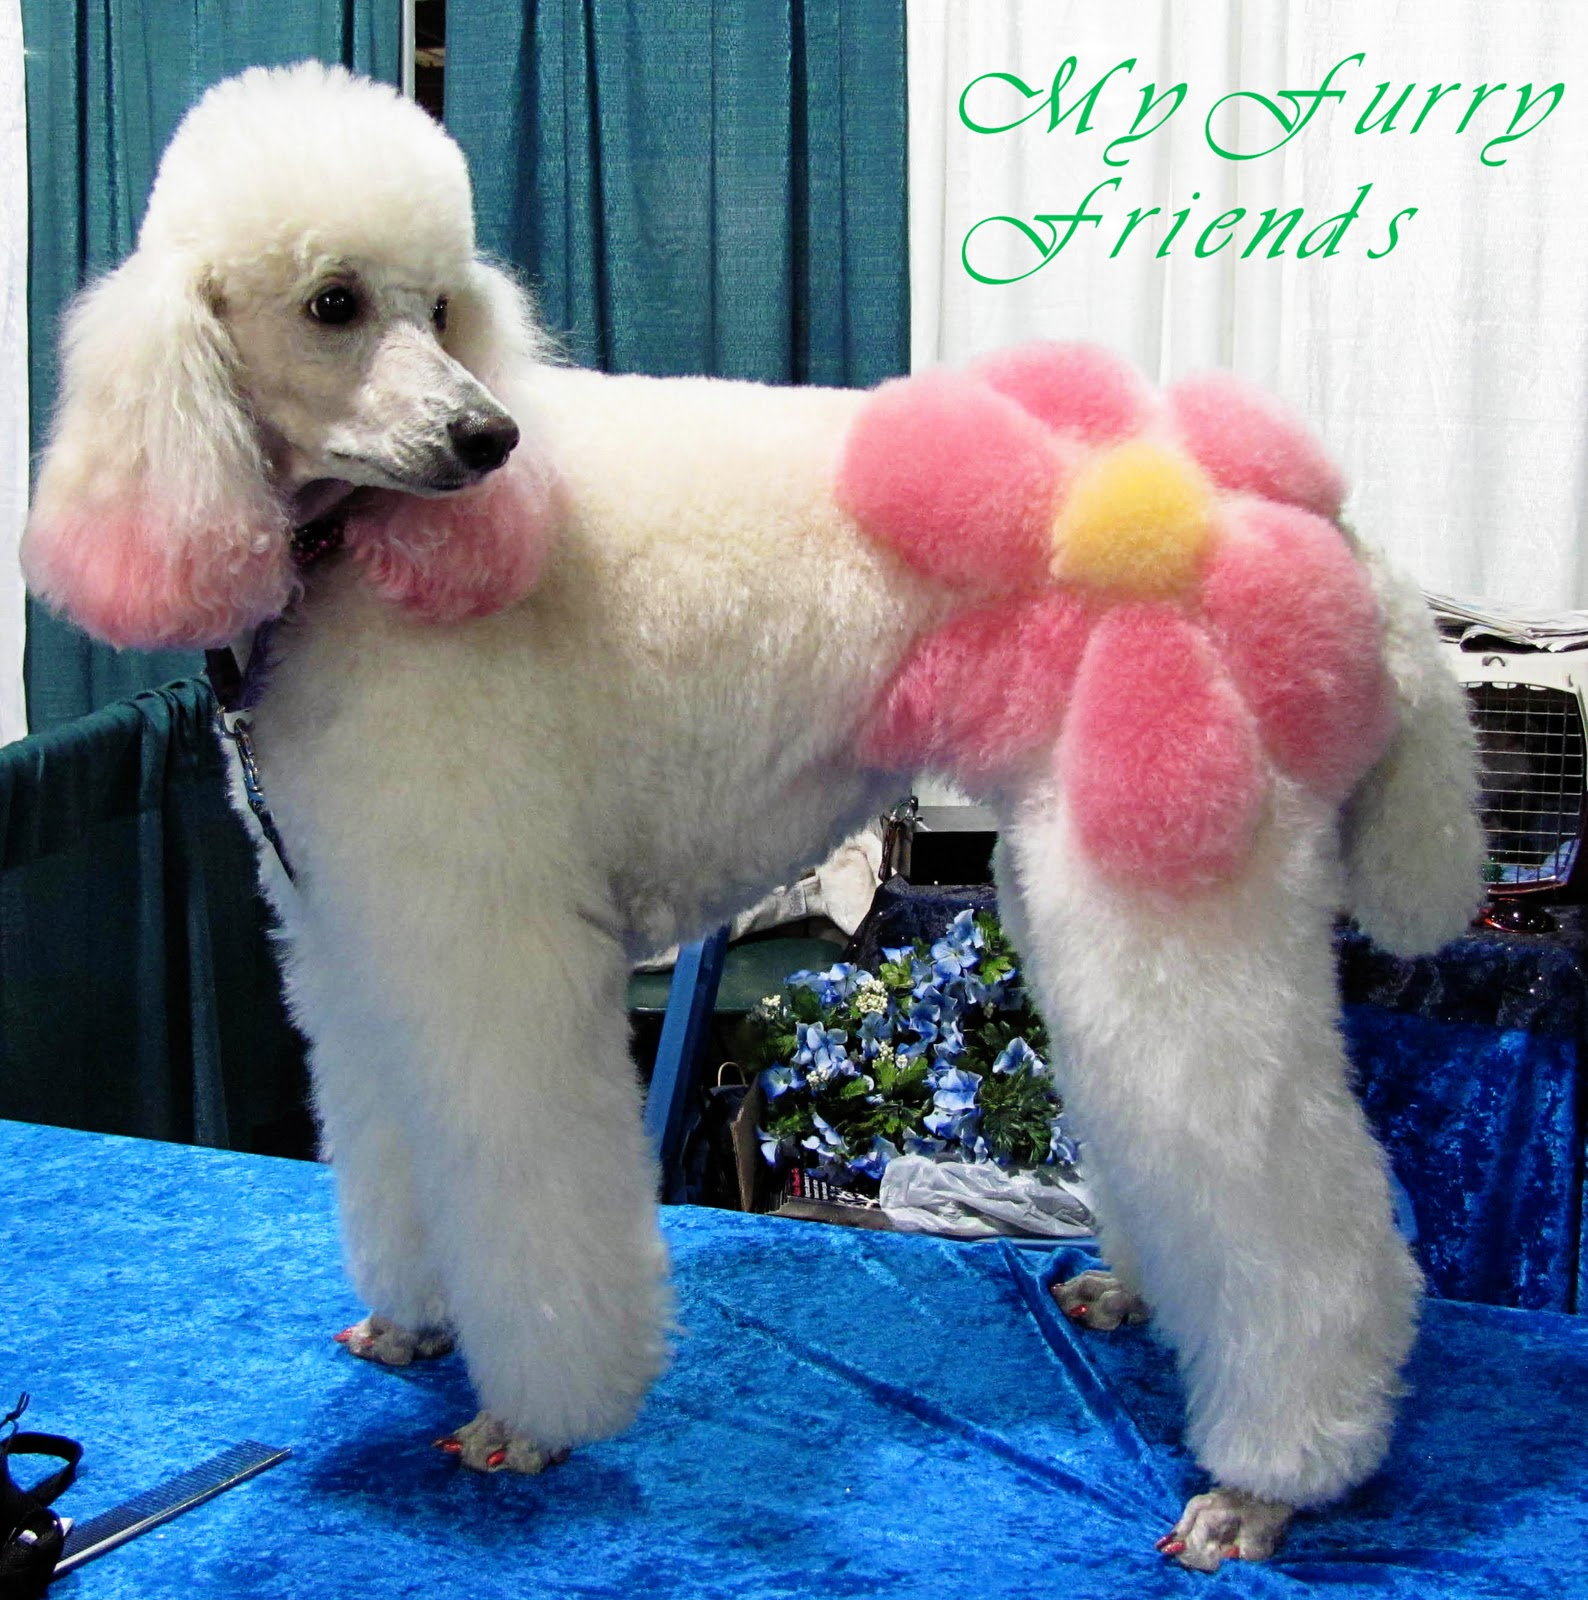 Bad Poodle Haircuts photo - 1